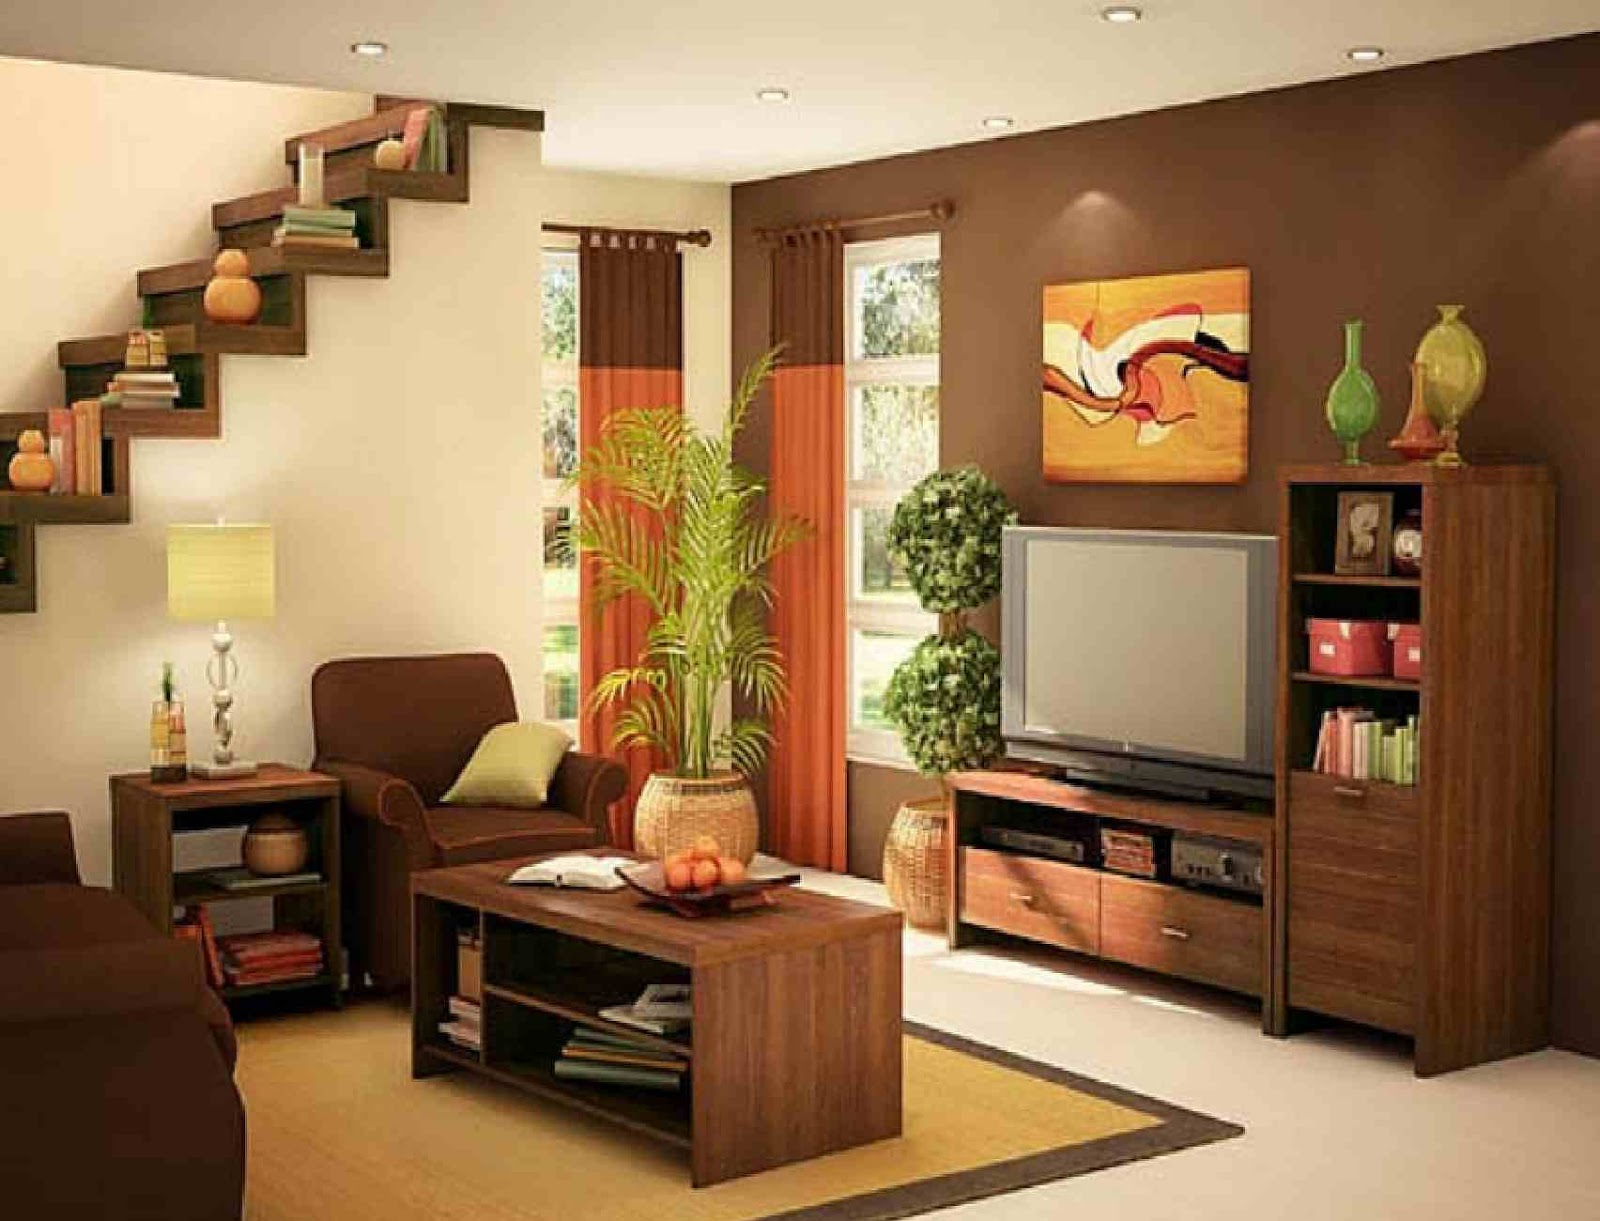 Home interior designs simple living room designs for At home living design